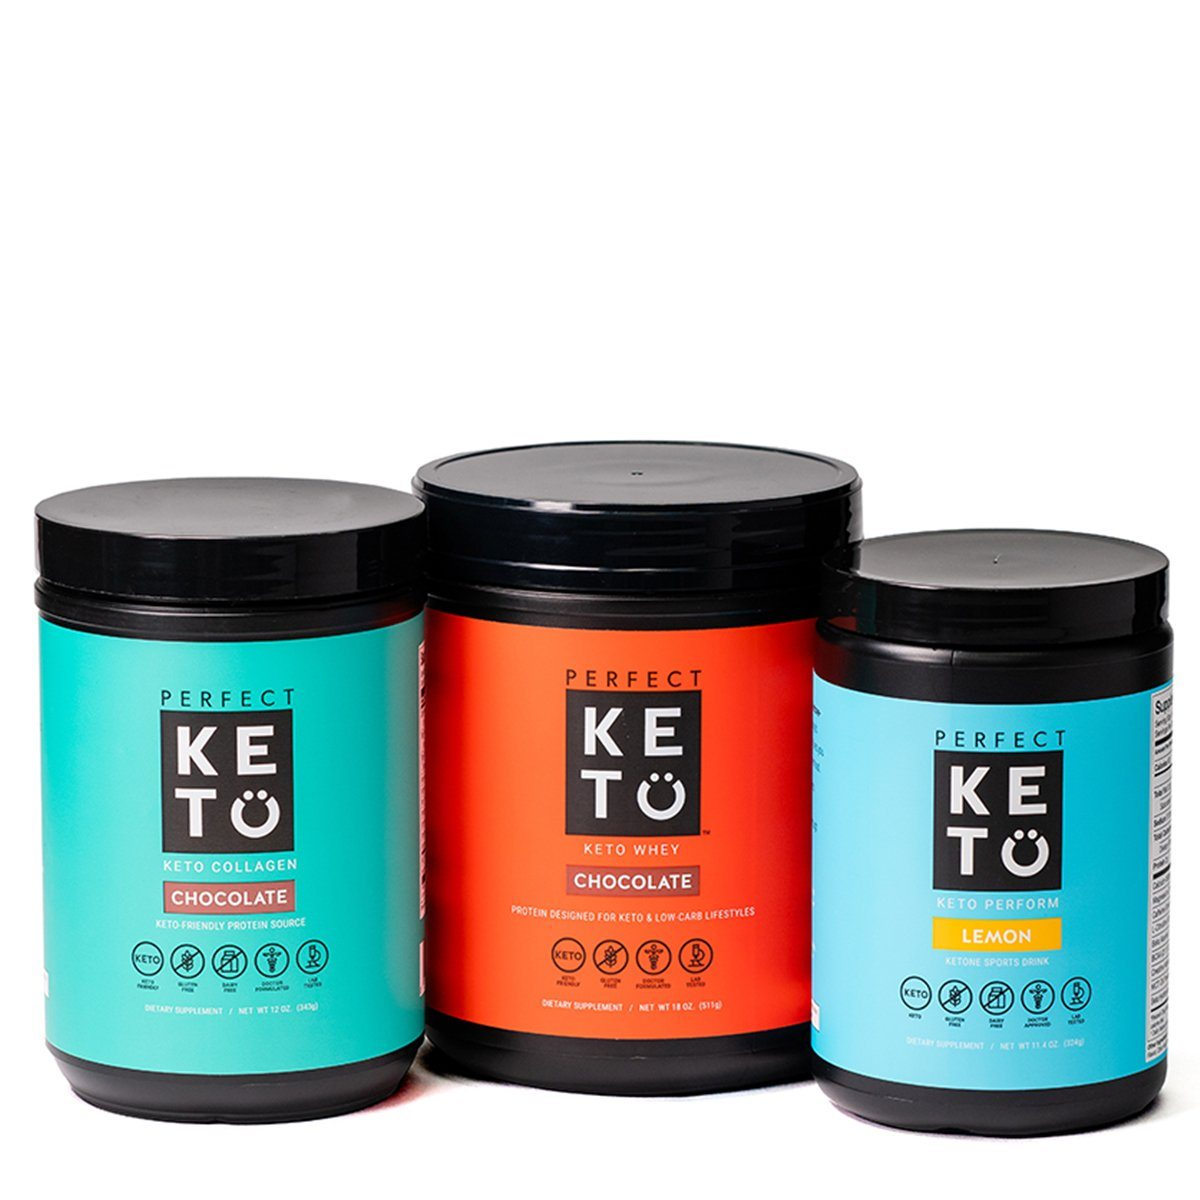 The Perfect Keto Performance Kit